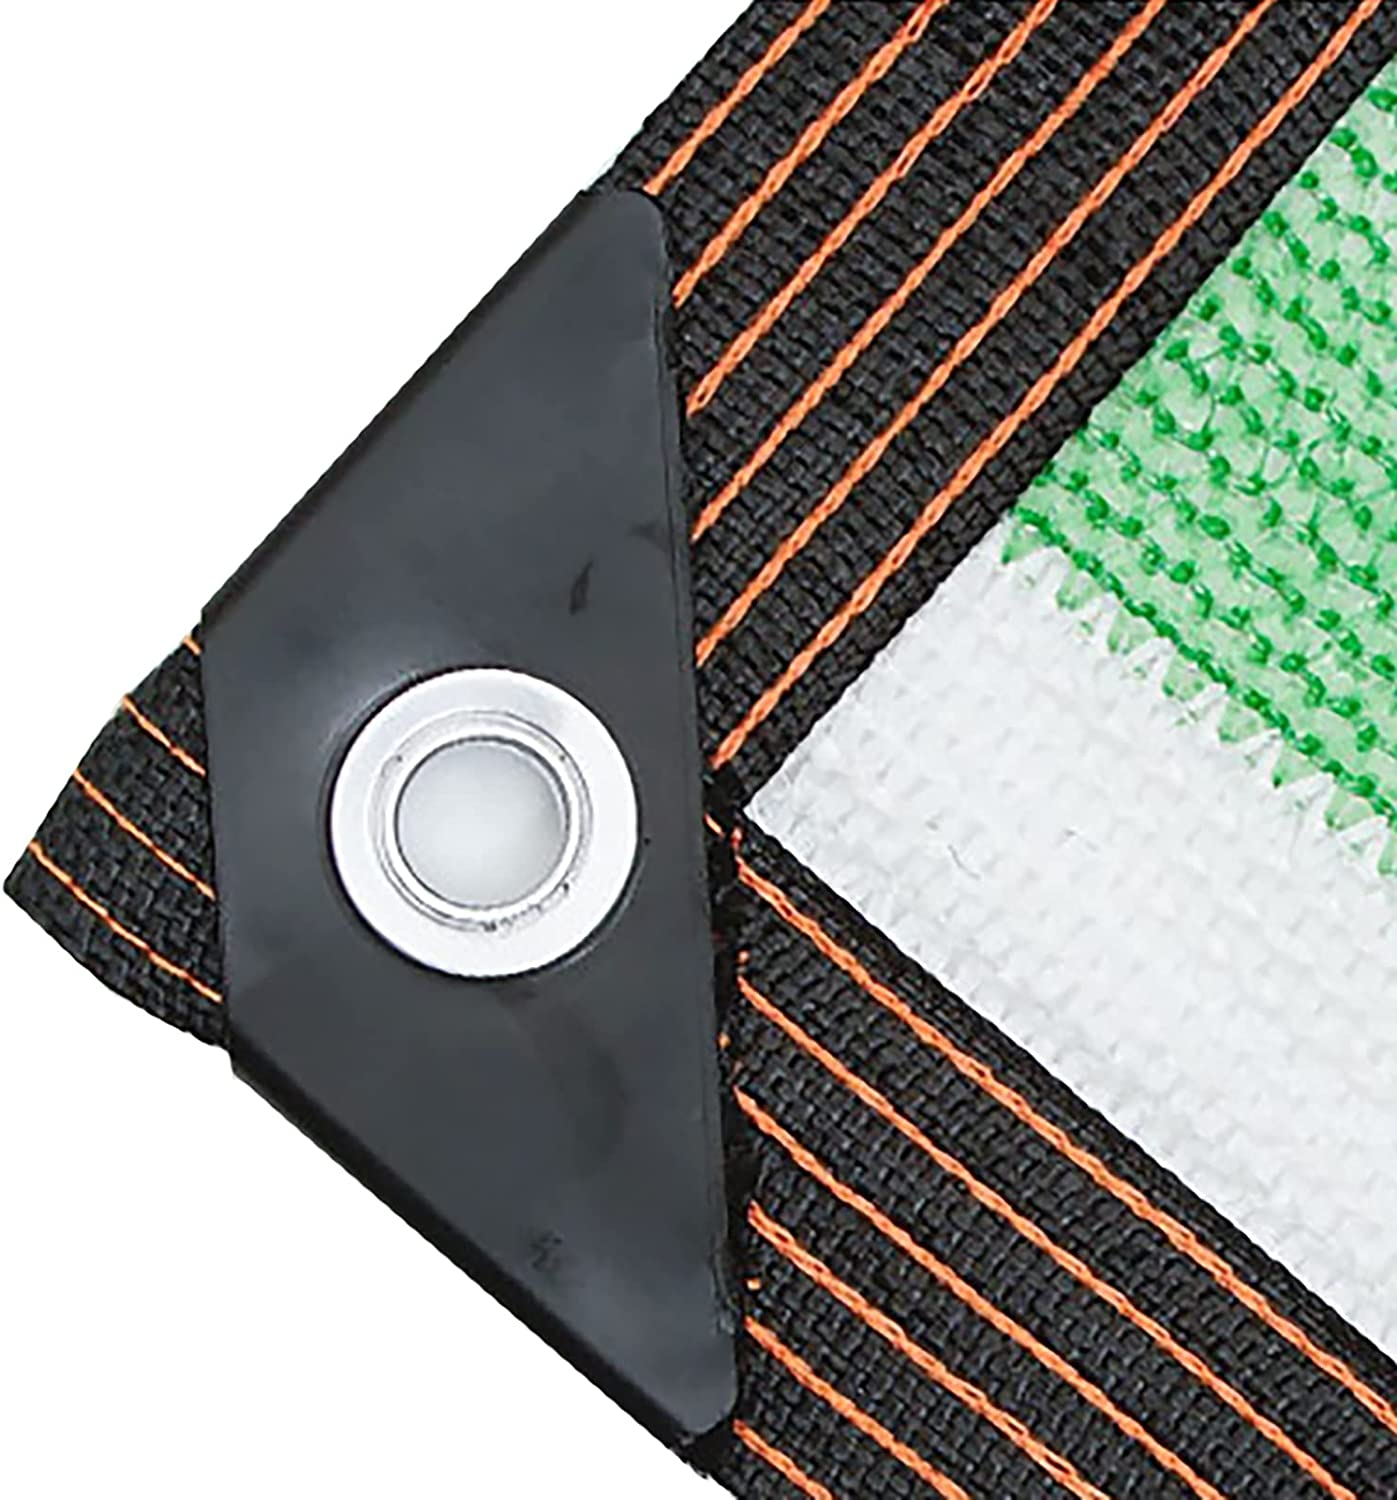 Shade Cloth White Green Rectangle 10m with Pla Purchase Rope Max 65% OFF